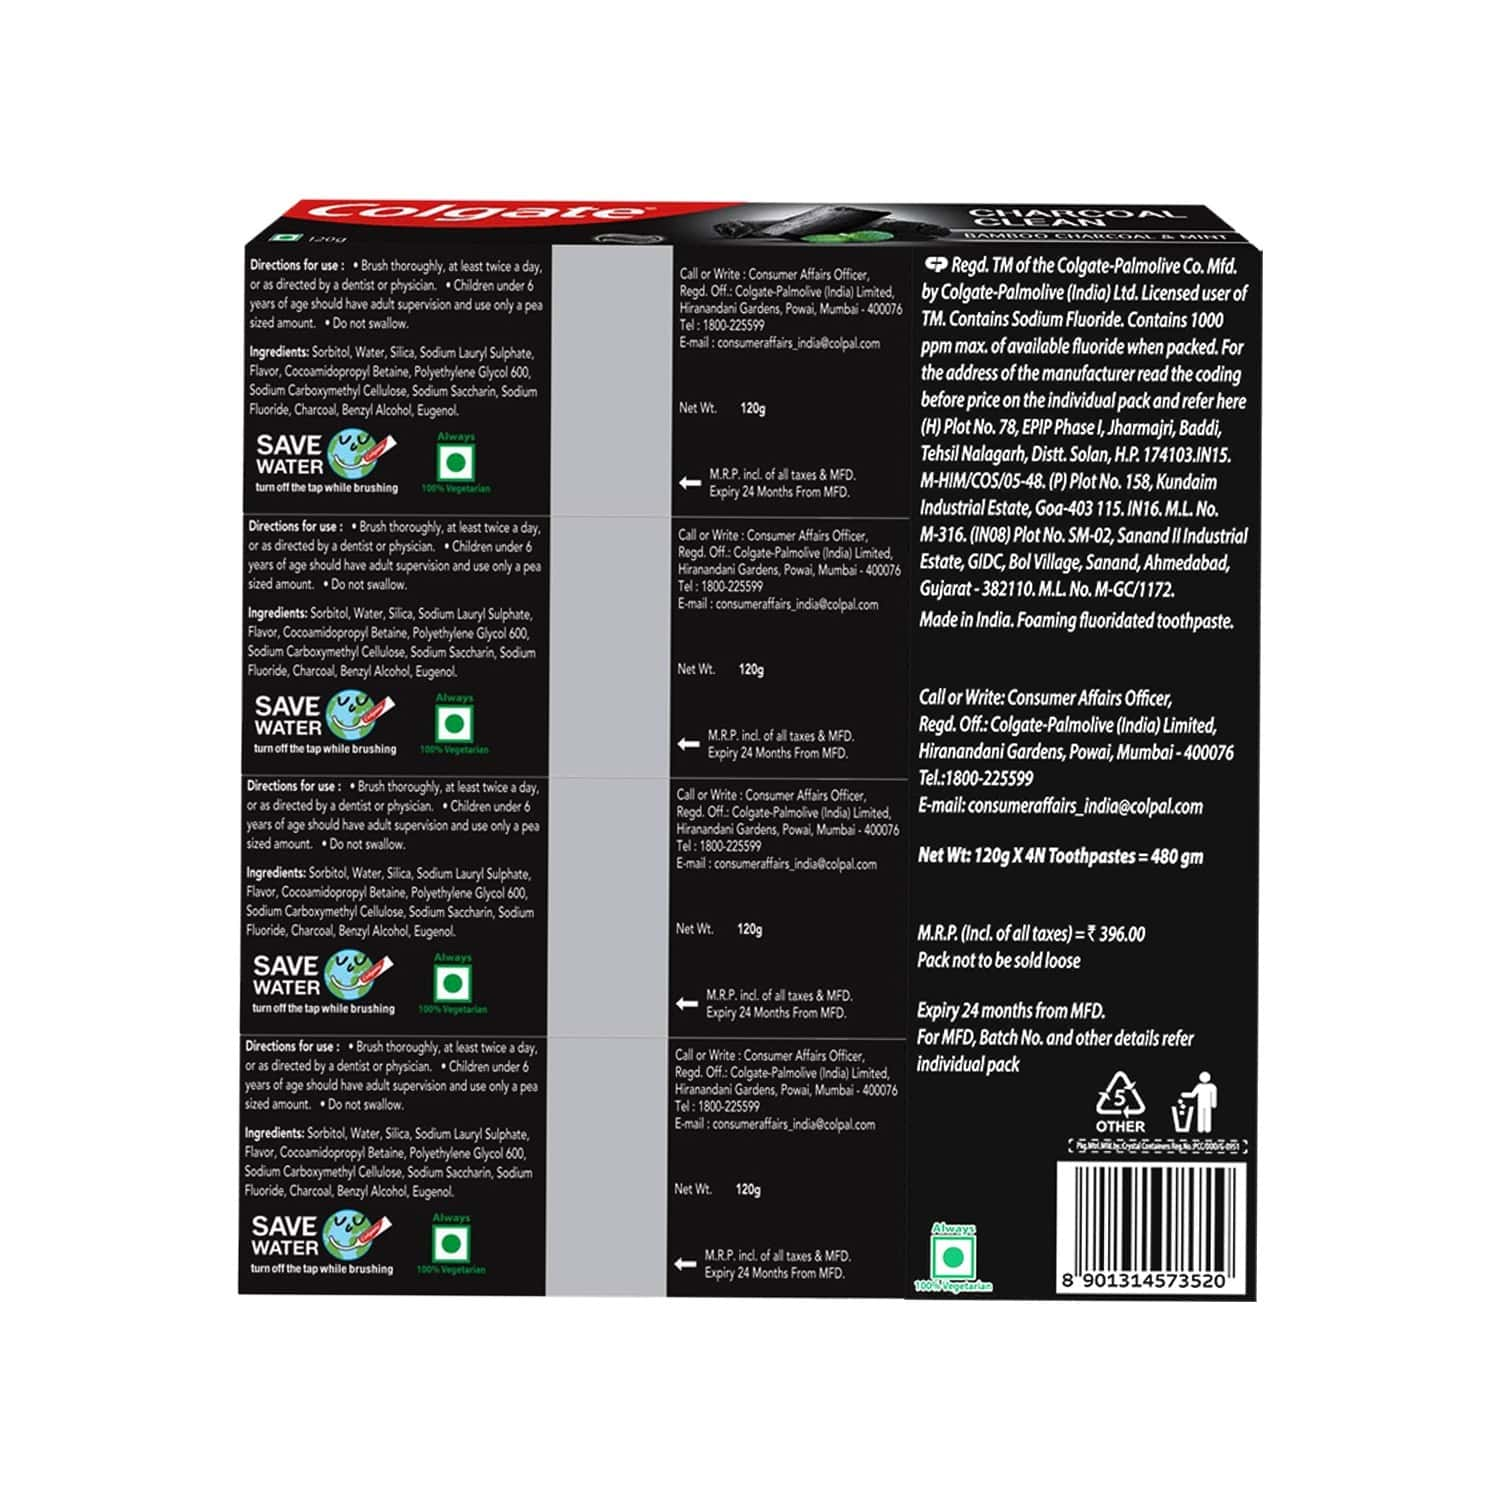 Colgate Charcoal Clean Toothpaste, Black Gel Paste, Bamboo Charcoal And Wintergreen Mint For Clean Mouth, 120g X 4 - 480g